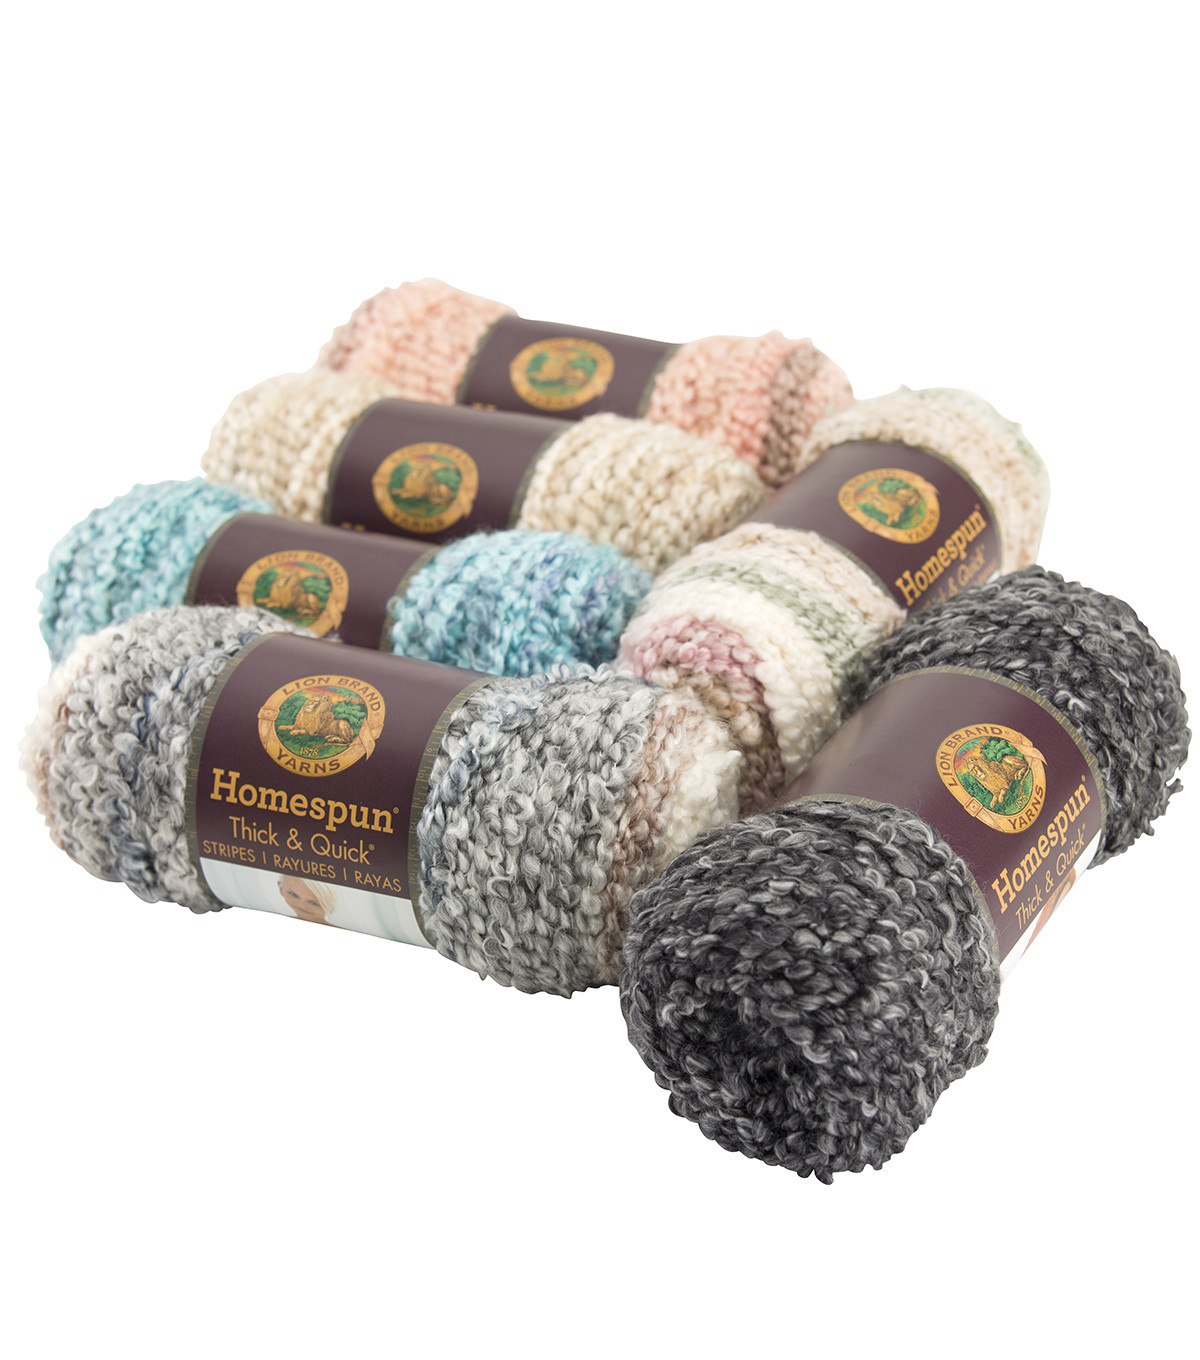 Lion Brand Thick and Quick Inspirational Lion Brand Homespun Thick & Quick Yarn at Joann Of Fresh 48 Pics Lion Brand Thick and Quick